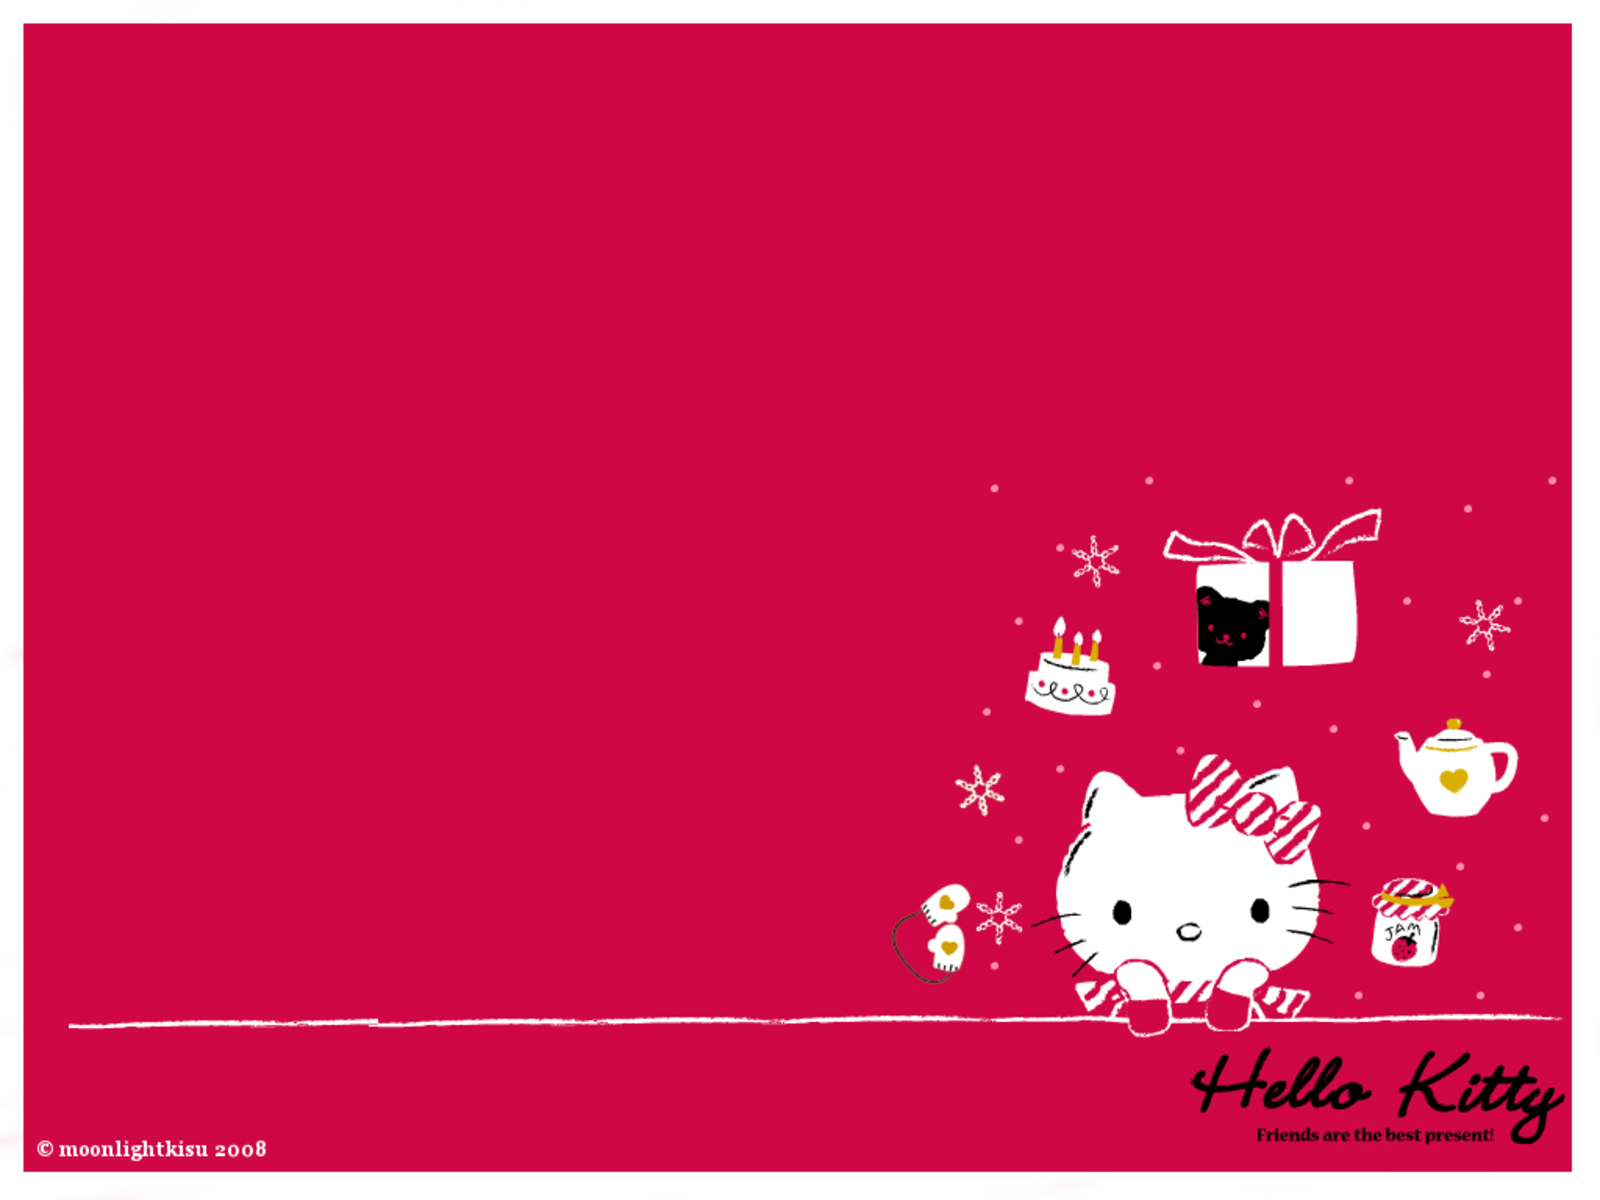 Popular Wallpaper Hello Kitty Friend - hello-kitty-wallpaper-2014_034606  Trends_988916.jpg